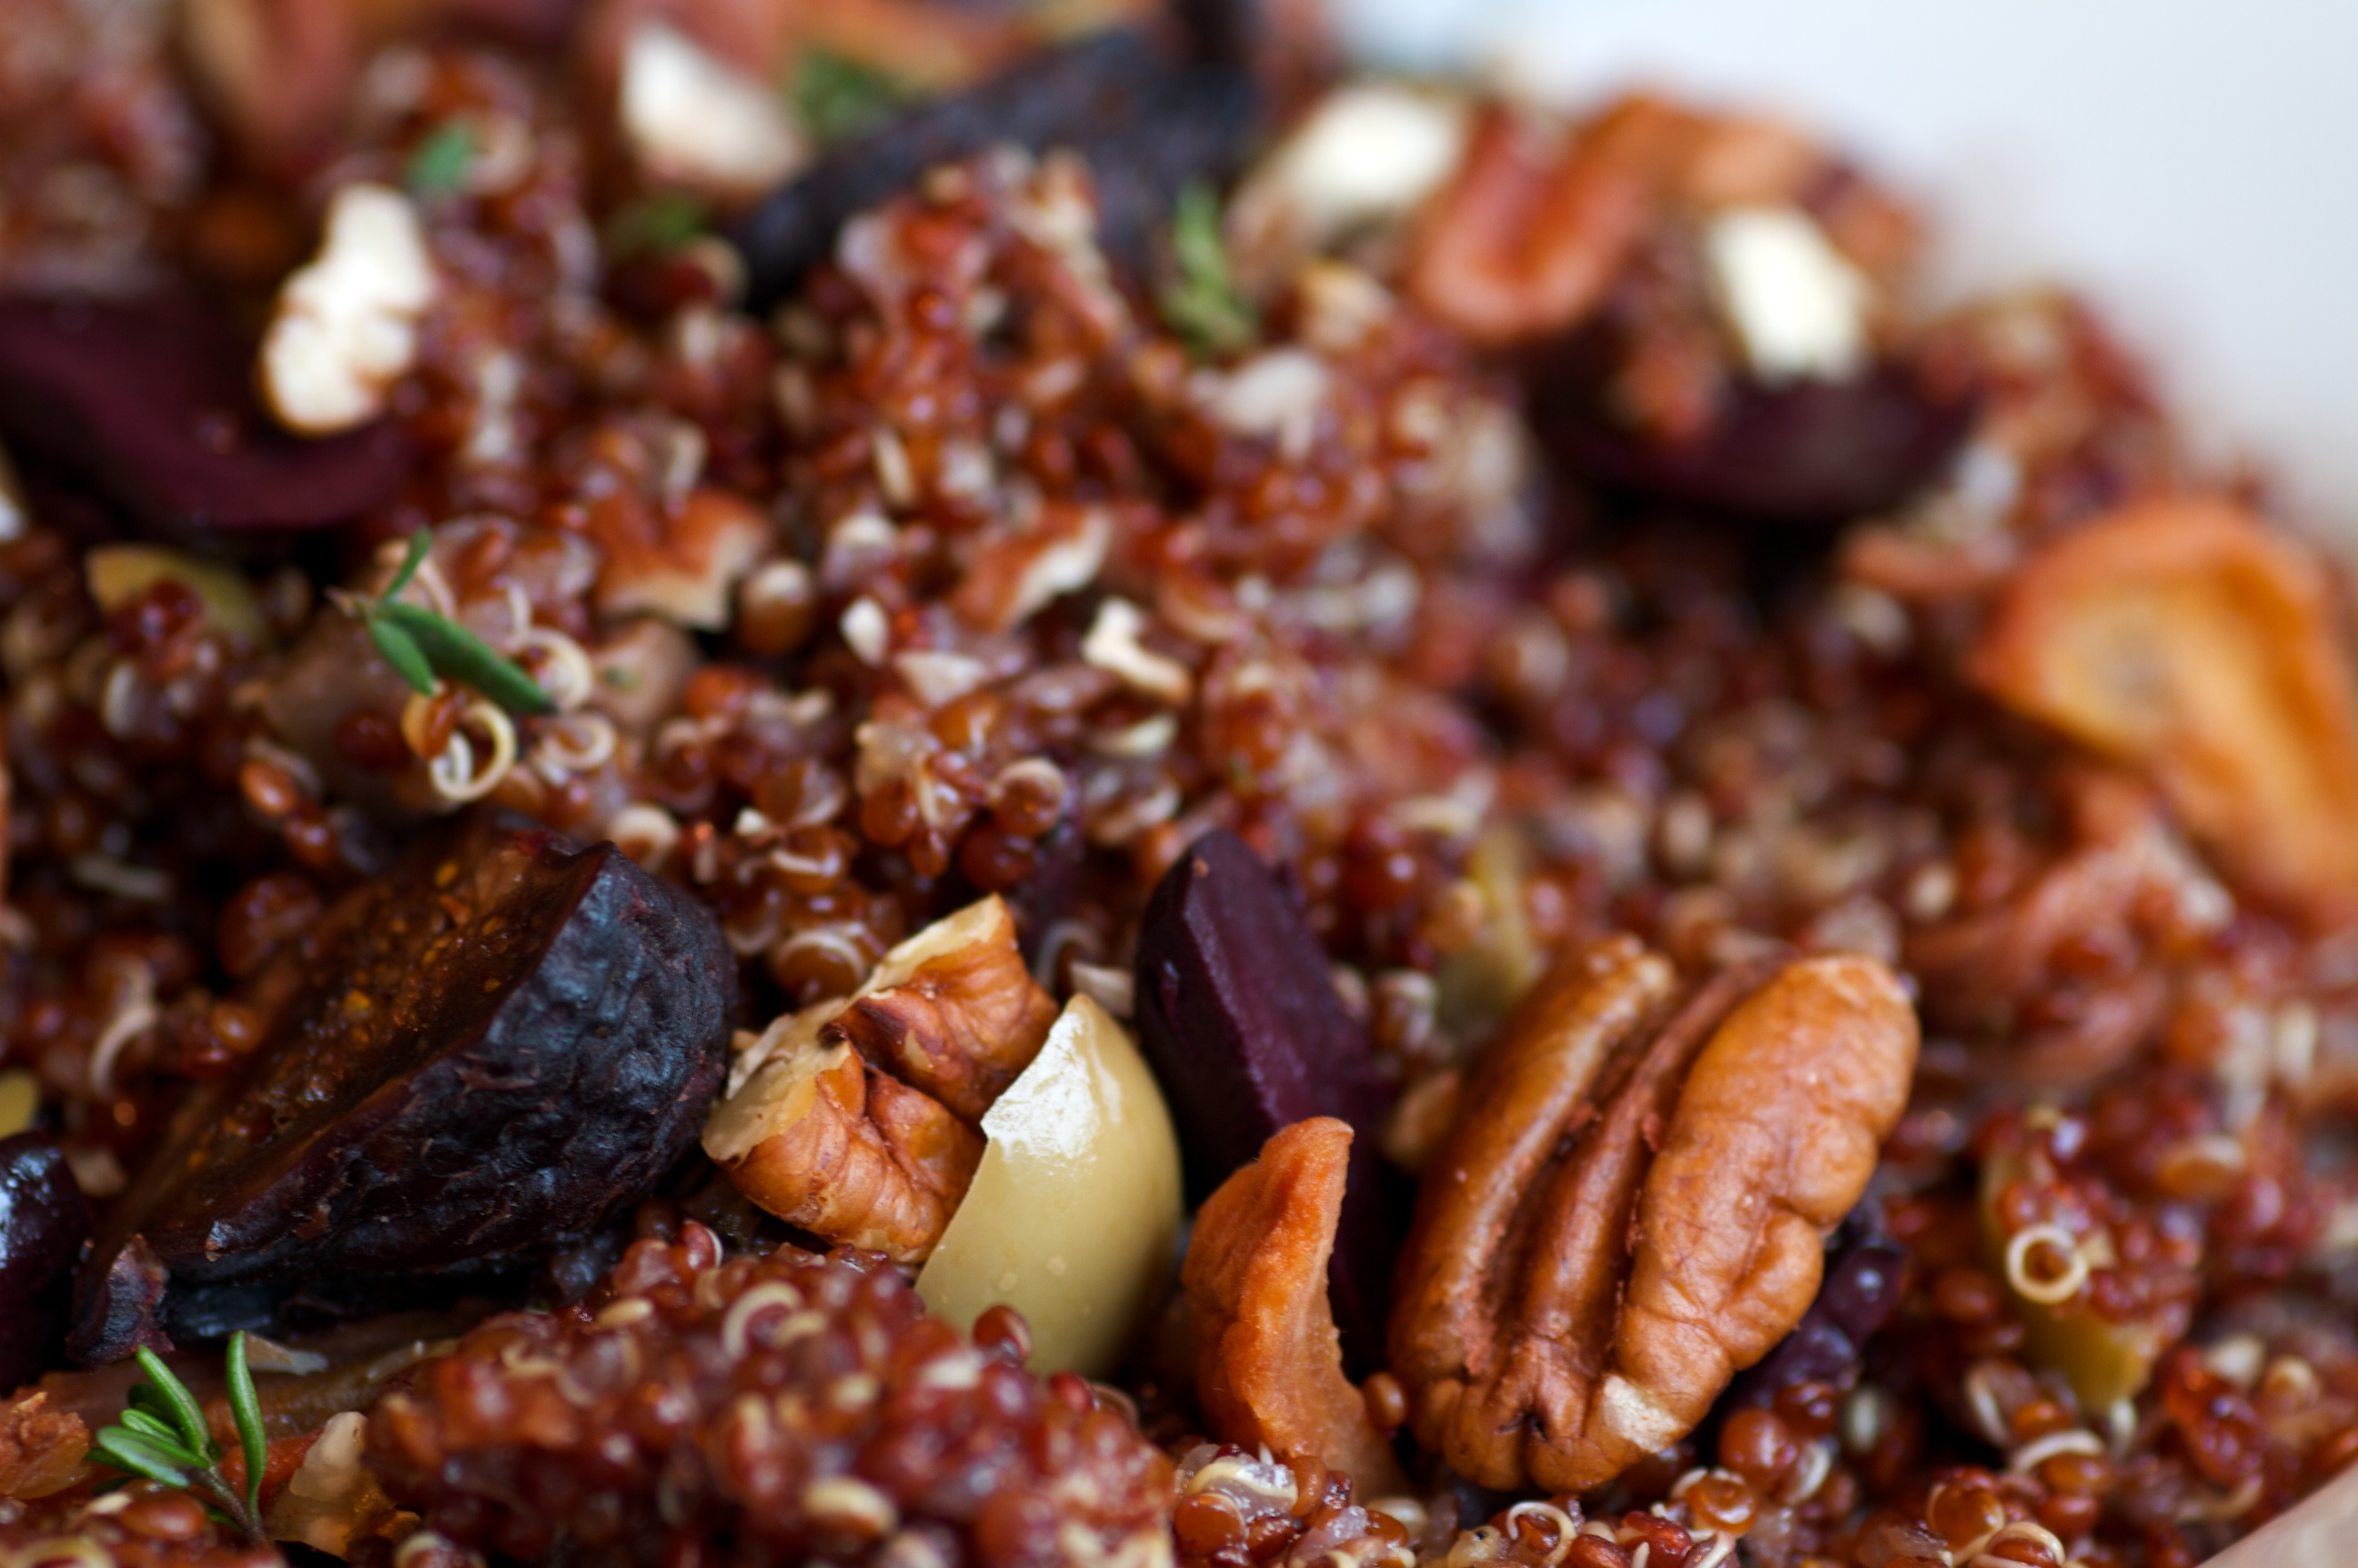 Quinoa w/figs and hazelnuts